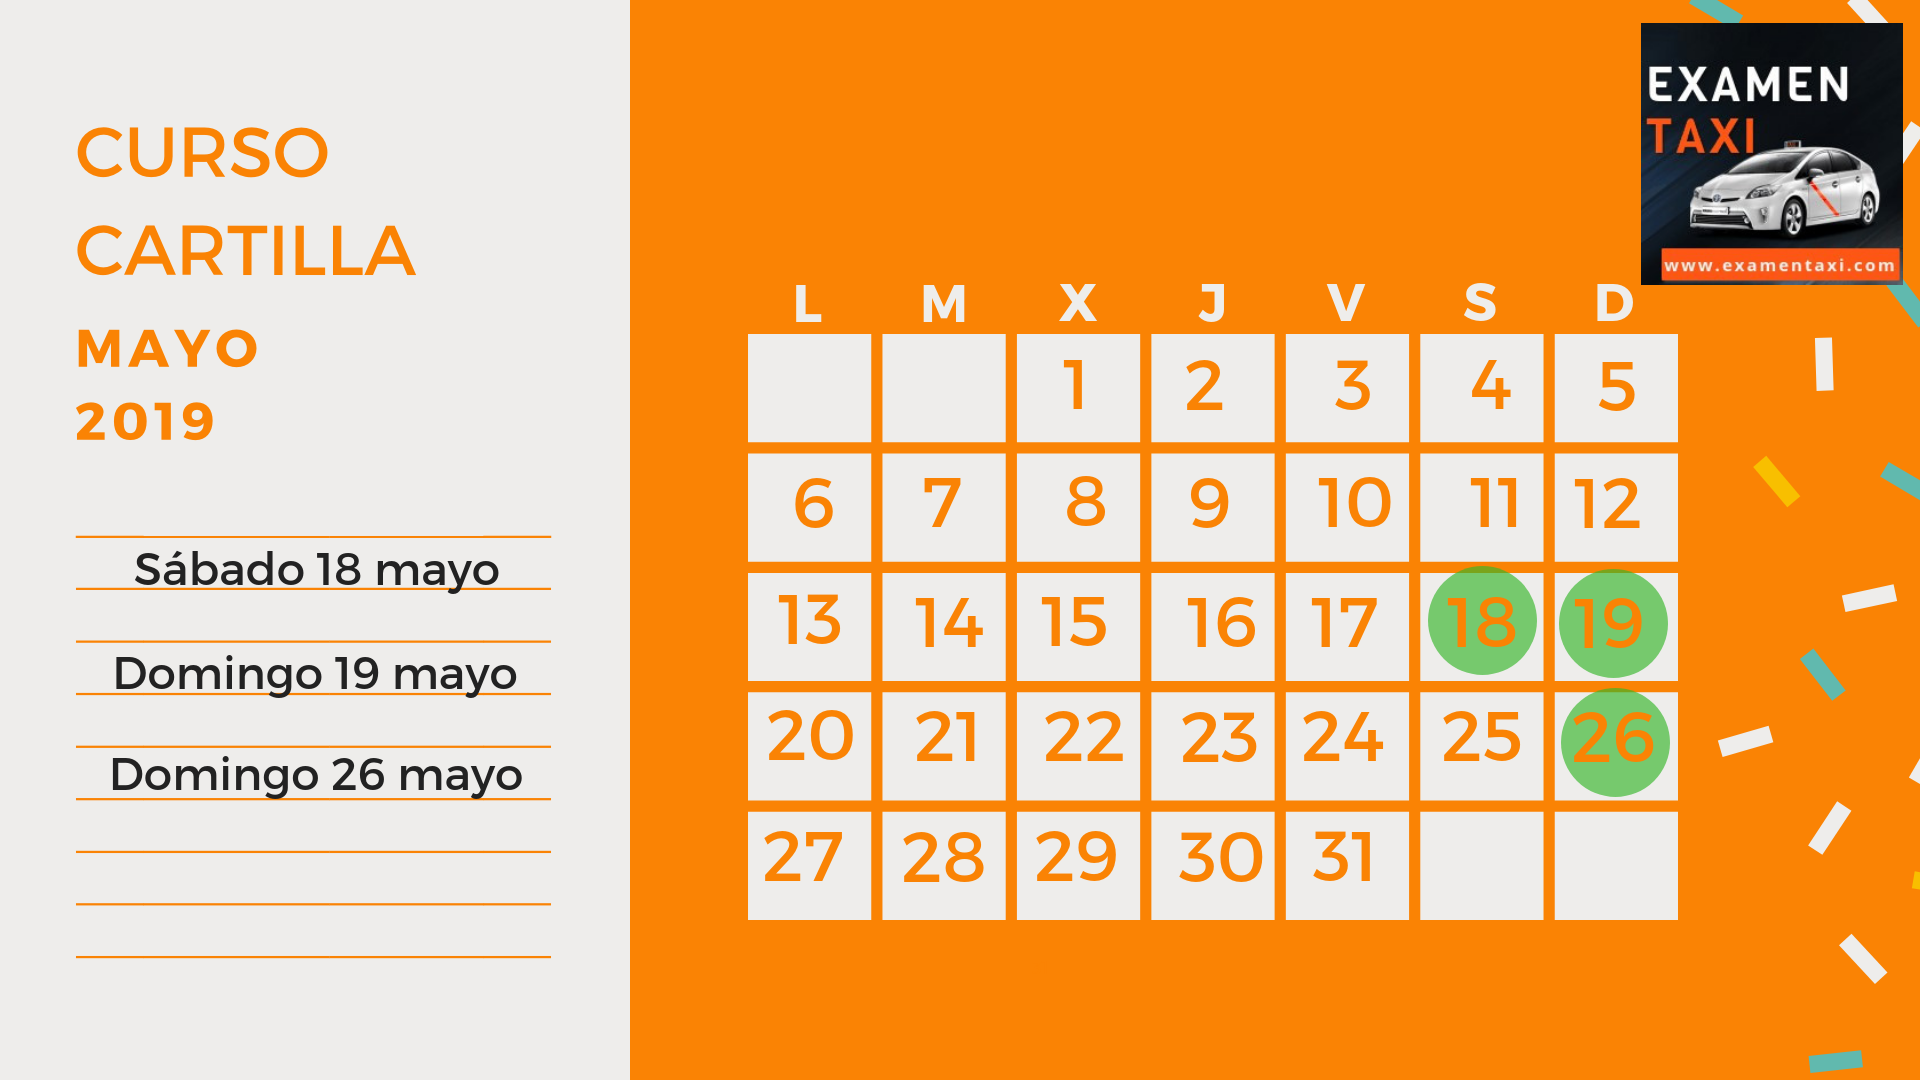 Calendario Curso Cartilla Mayo 2019